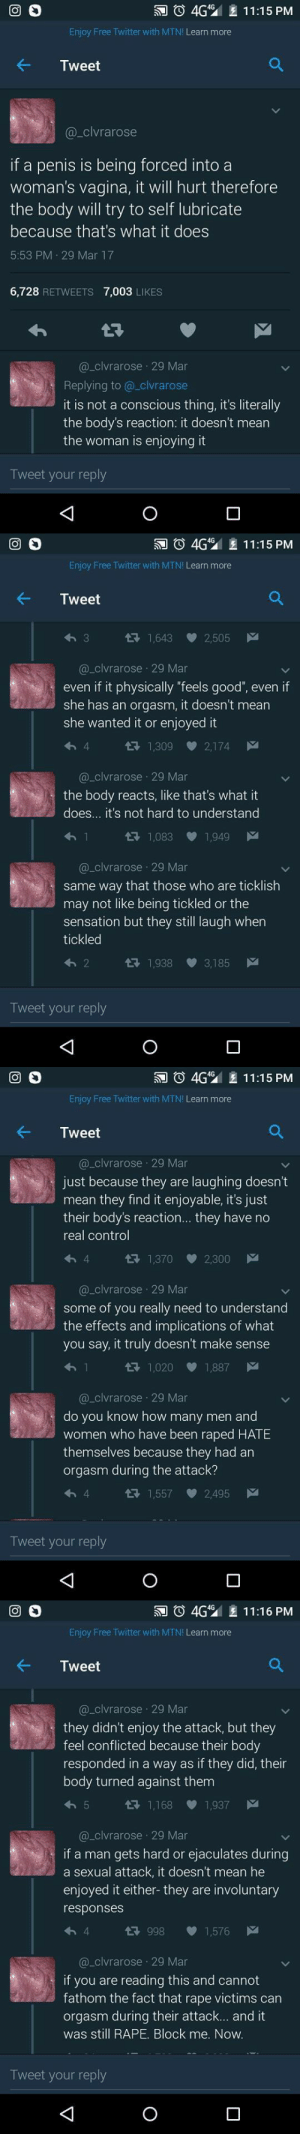 "chocolatehighhh: Please reblog this every time you see it: 回。  。4G42 11:15 PM  Enjoy Free Twitter with MTN! Learn more  @_clvrarose  if a penis is being forced into a  woman's vagina, it will hurt therefore  the body will try to self lubricate  because that's what it does  5:53 PM 29 Mar 17  6,728 RETWEETS 7,003 LIKES  @_clvrarose 29 Mar  Replying to @_clvrarose  it is not a conscious thing, it's literally  the body's reaction: it doesn't mean  the woman is enjoying it  Tweet your reply   4G 11:15 PM  Enjoy Free Twitter with MTN! Learn more  Tweet  1,643 2,505  @_clvrarose 29 Mar  even if it physically ""feels good"", even if  she has an orgasm, it doesn't mean  she wanted it or enjoyed it  1,309 2,174  @_clvrarose 29 Mar  the body reacts, like that's what it  does... it's not hard to understand  1,083 1,949  a_clvrarose 29 Mar  same way that those who are ticklish  may not like being tickled or the  sensation but they still laugh when  tickled  1,938 3,185  Tweet your reply   4G 11:15 PM  Enjoy Free Twitter with MTN! Learn more  Tweet  @_clvrarose 29 Mar  just because they are laughing doesn't  mean they find it enjoyable, it's just  their body's reaction... they have no  real control  1,370 2,300  @_clvrarose 29 Mar  some of vou really need to understand  the effects and implications of what  you say, it truly doesn't make sense  R1,020 1,887  @_clvrarose 29 Mar  do you know how many men ang  women who have been raped HATE  themselves because they had an  orgasm during the attack?  1,557 2,495  Tweet your reply   牁 4G42 11:16 PM  Enjoy Free Twitter with MTN! Learn more  @_clvrarose 29 Mar  they didn't enjoy the attack, but they  feel conflicted because their body  responded in a way as if they did, their  body turned against them  1,168 1,937  @clvrarose 29 Mar  if a man gets hard or ejaculates during  a sexual attack, it doesn't mean he  enjoyed it either-they are involuntary  responses  998  1,576  @_clvrarose 29 Mar  if you are reading this and cannot  fathom the fact that rape victims can  orgasm during their attack... and it  was still RAPE. Block me. Now.  Tweet your reply chocolatehighhh: Please reblog this every time you see it"